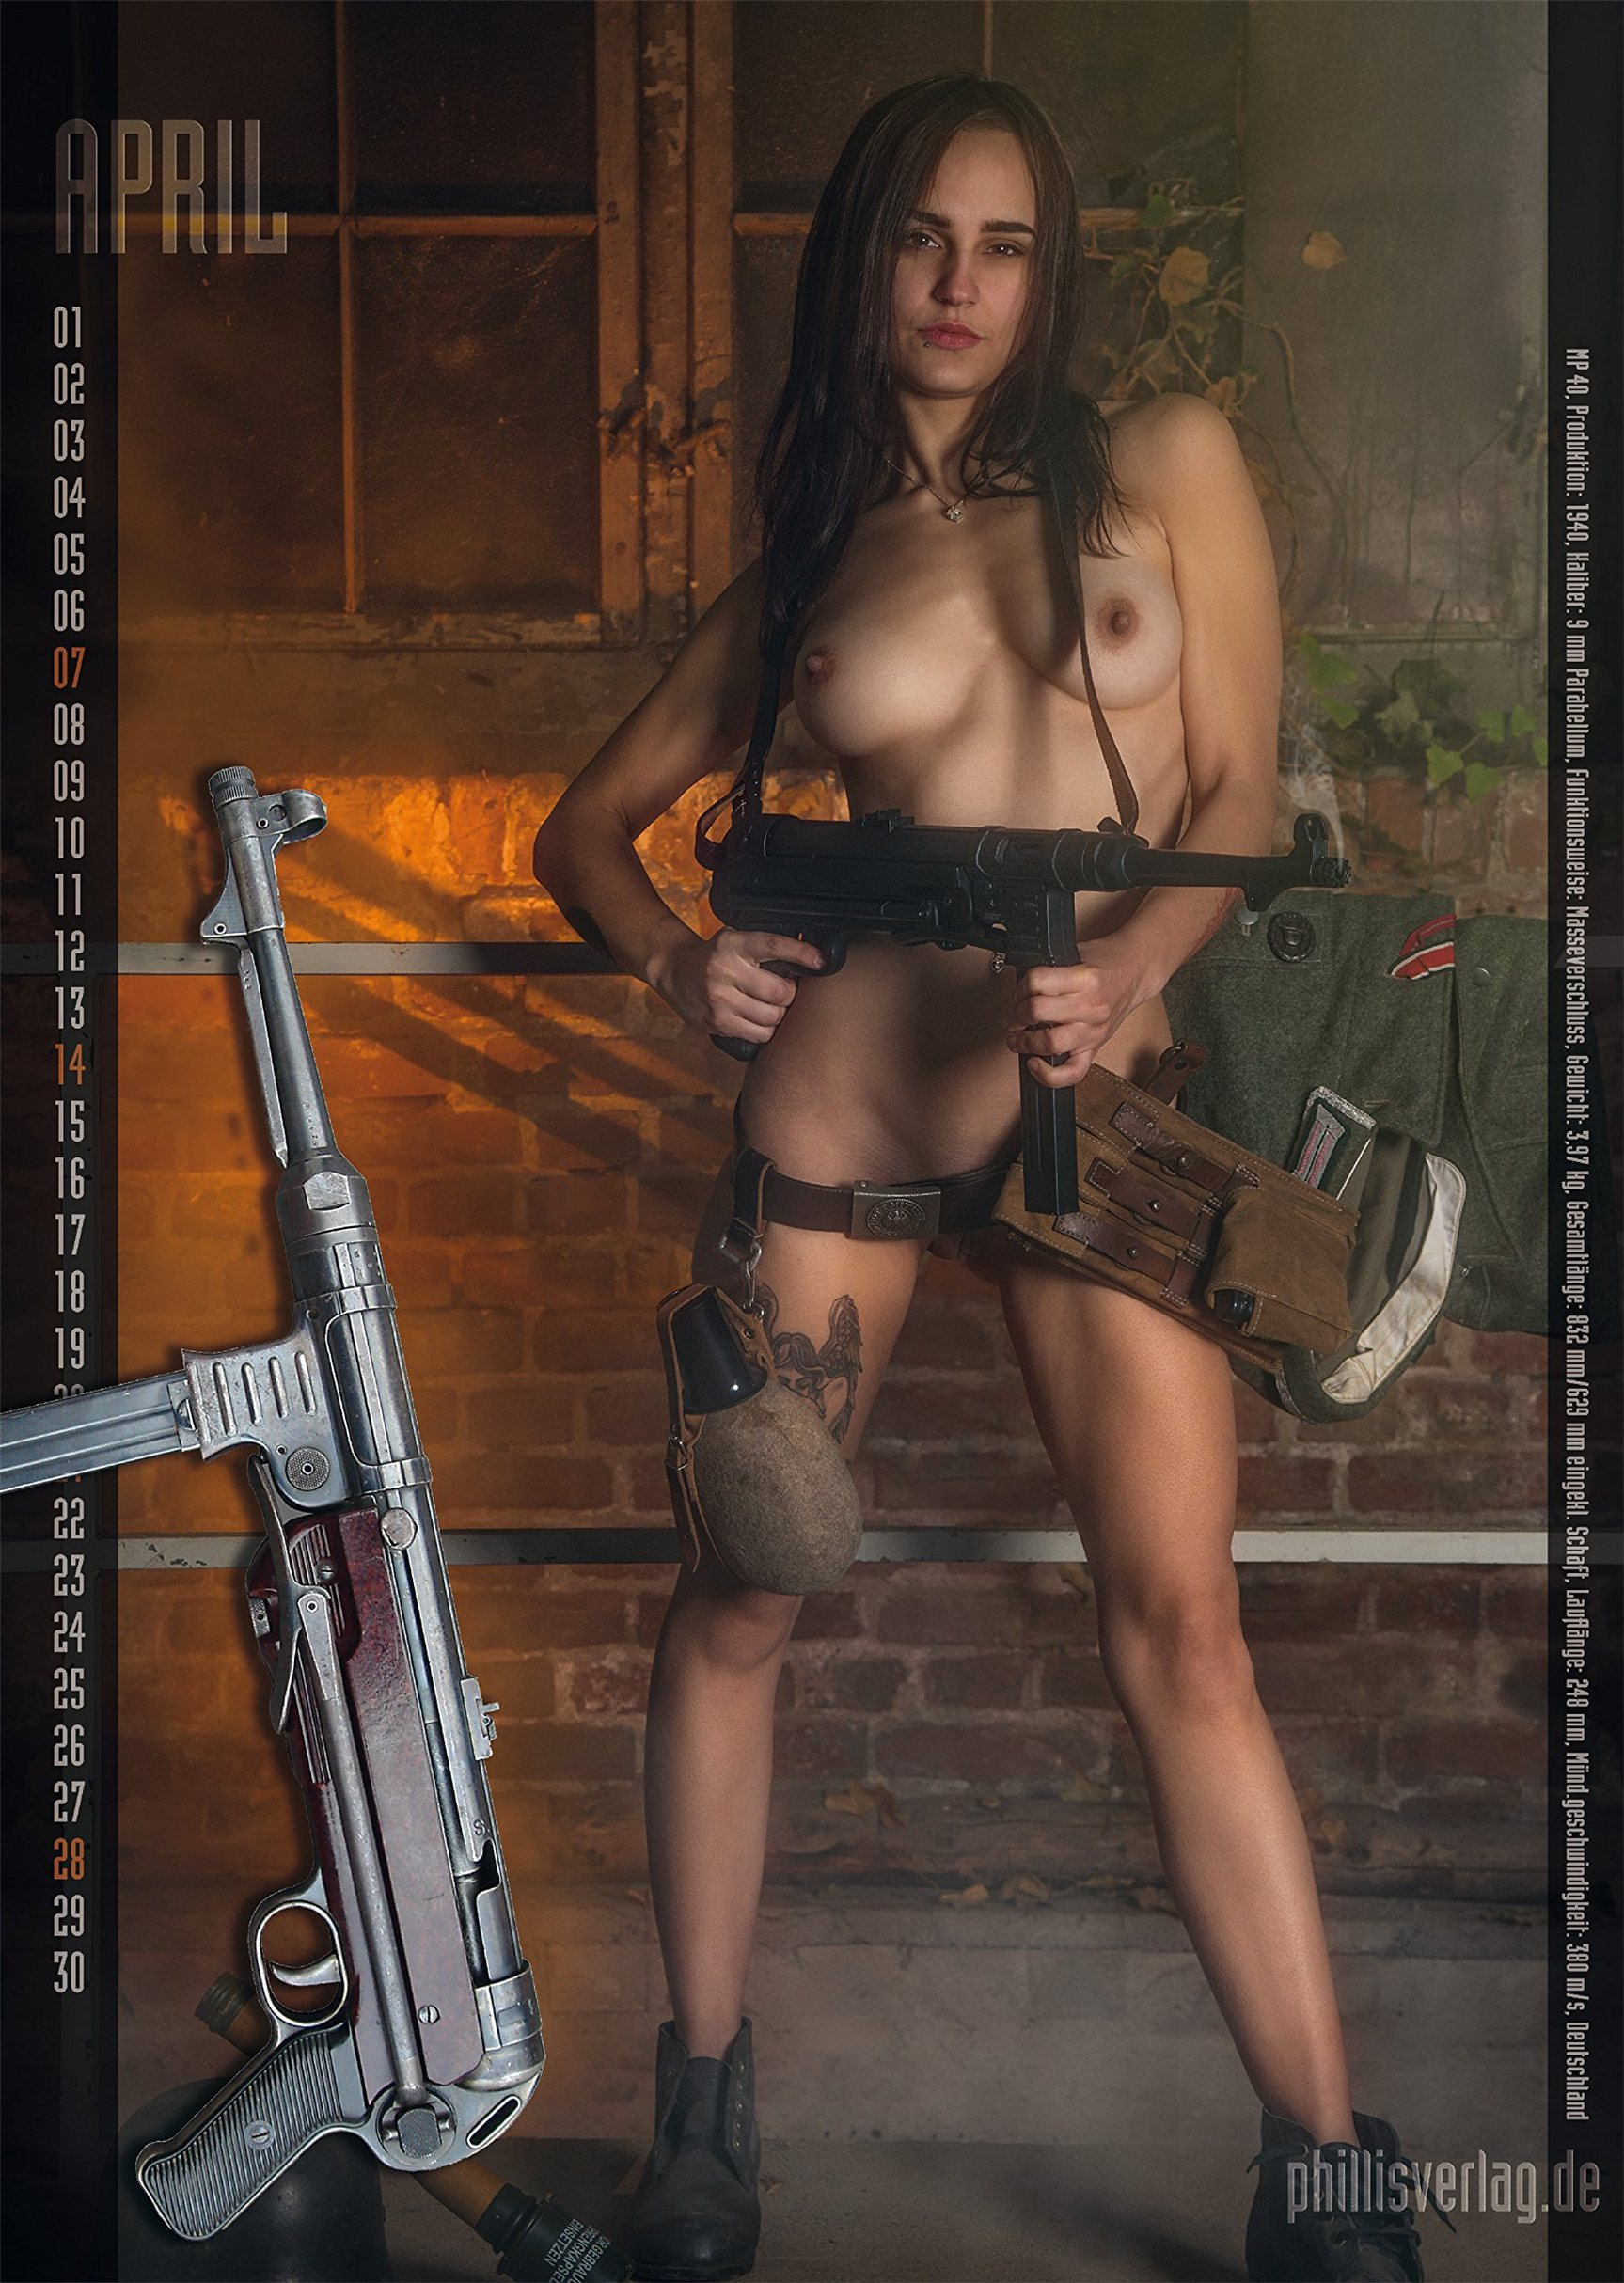 Girls and Guns / 2019 calendar by Jorg Neubert - апрель